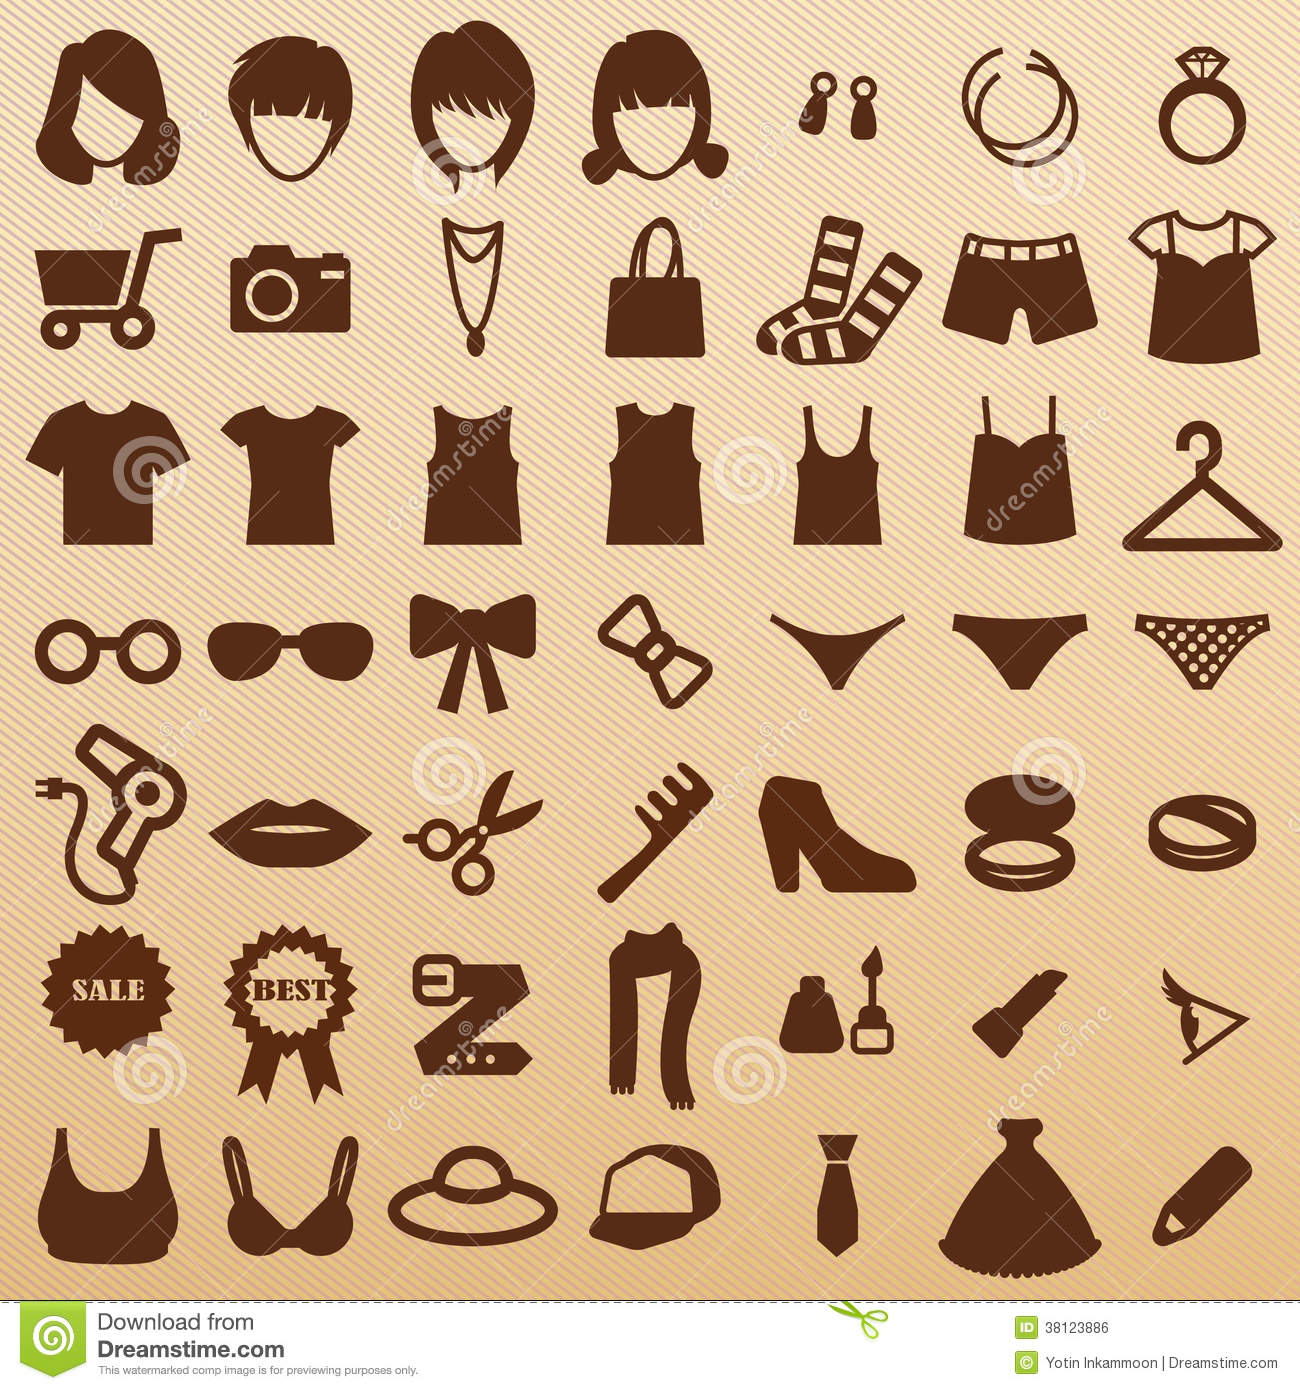 Fashion Symbols Royalty Free Stock Image Image 38123886